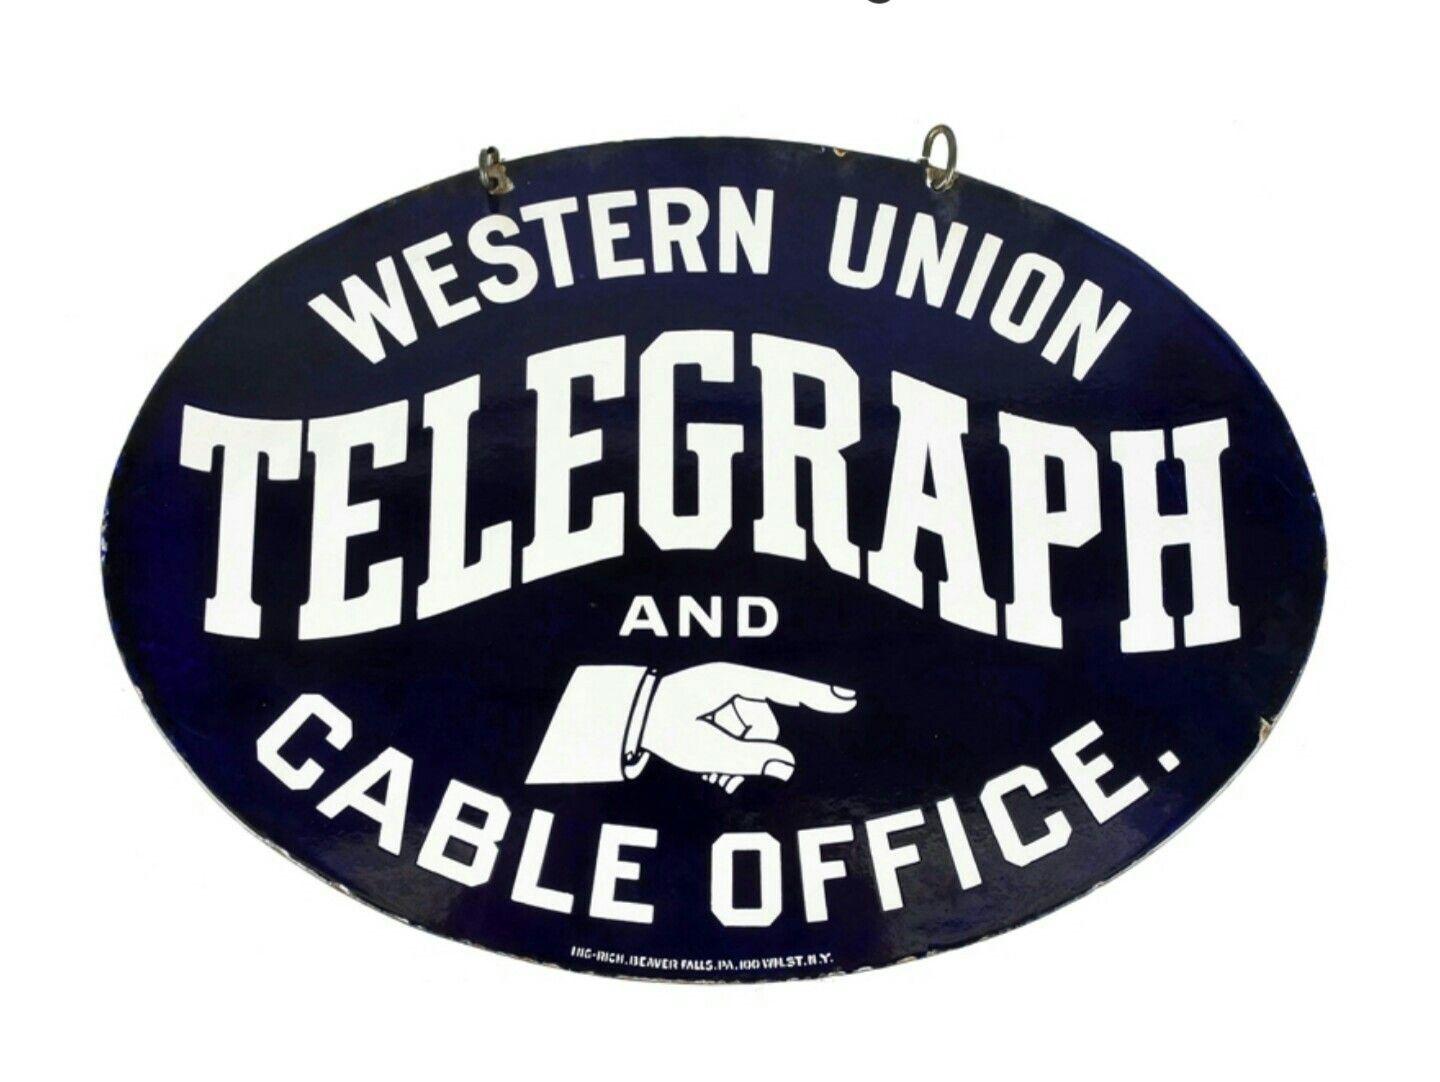 Telegraphic Sch Example | Rare Original Western Union Telegraph And Cable Office Porcelain